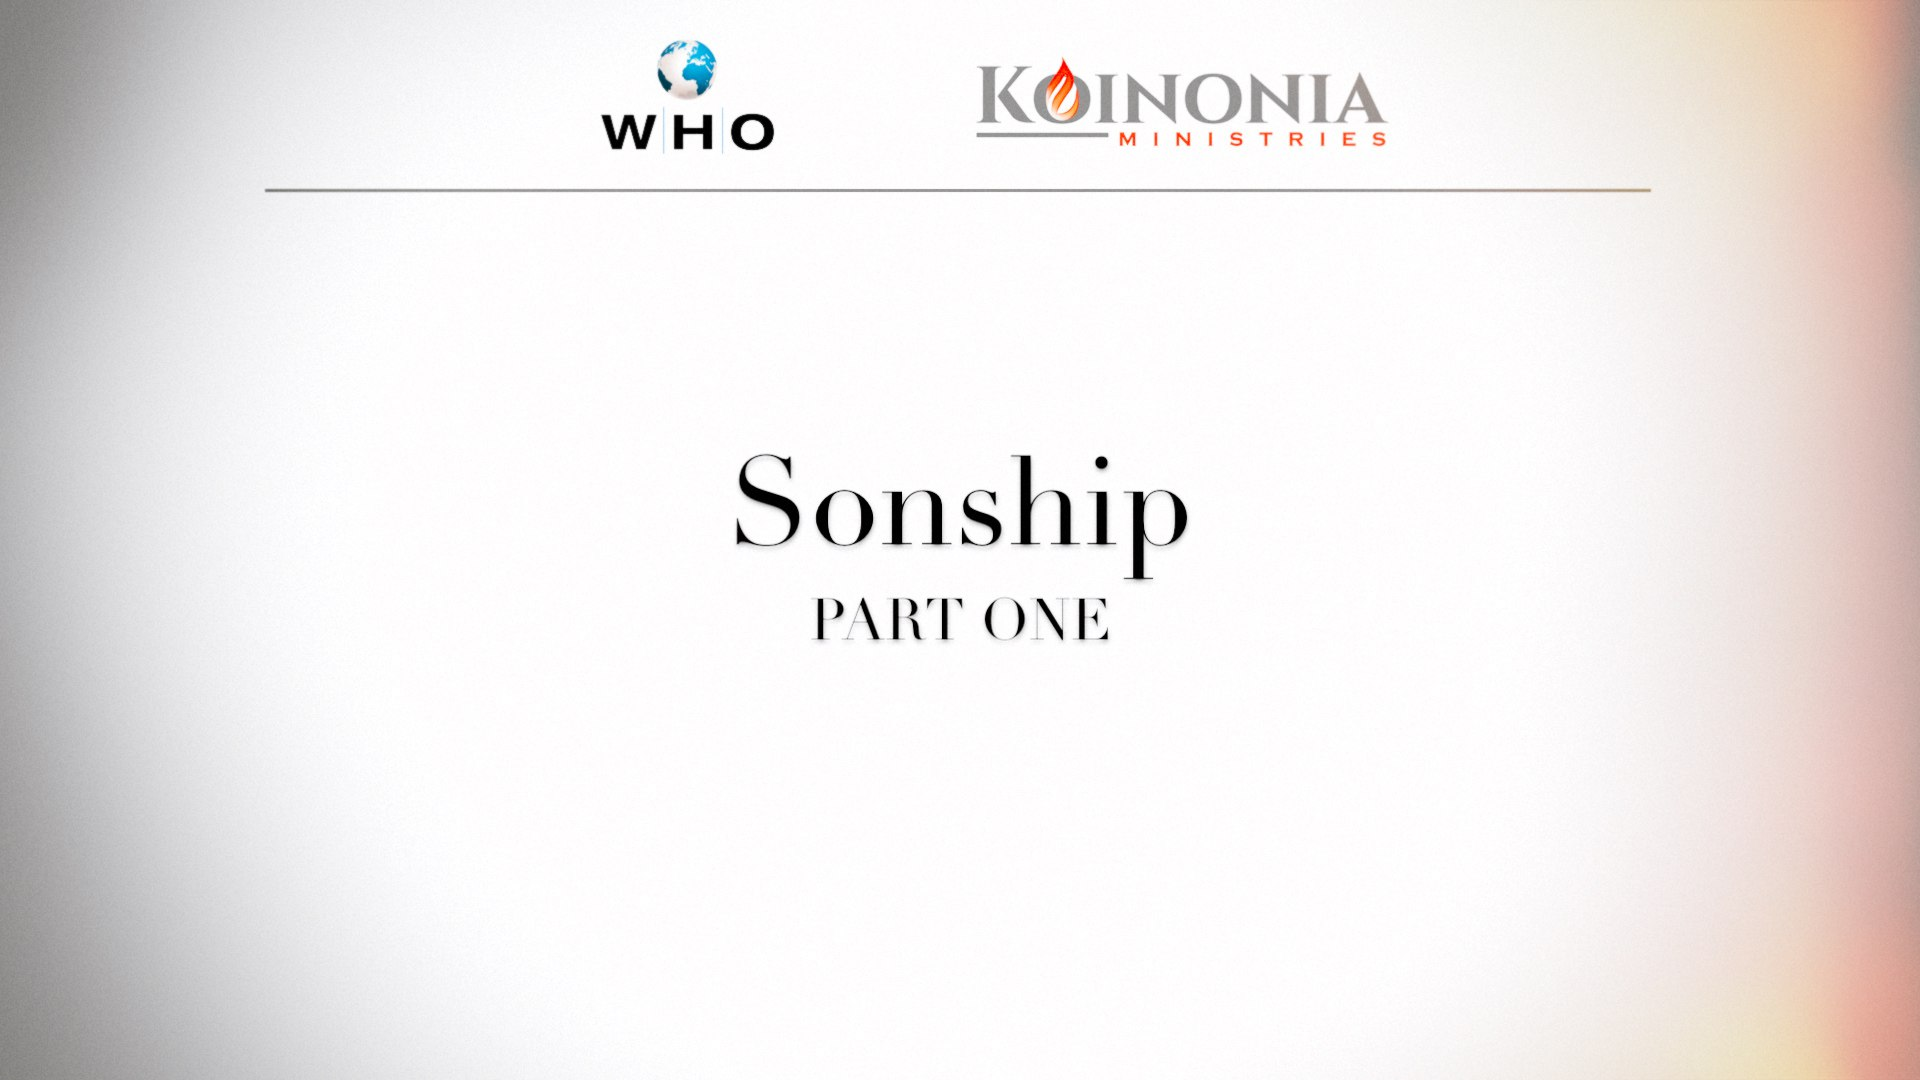 Sonship, Part 1 of 4